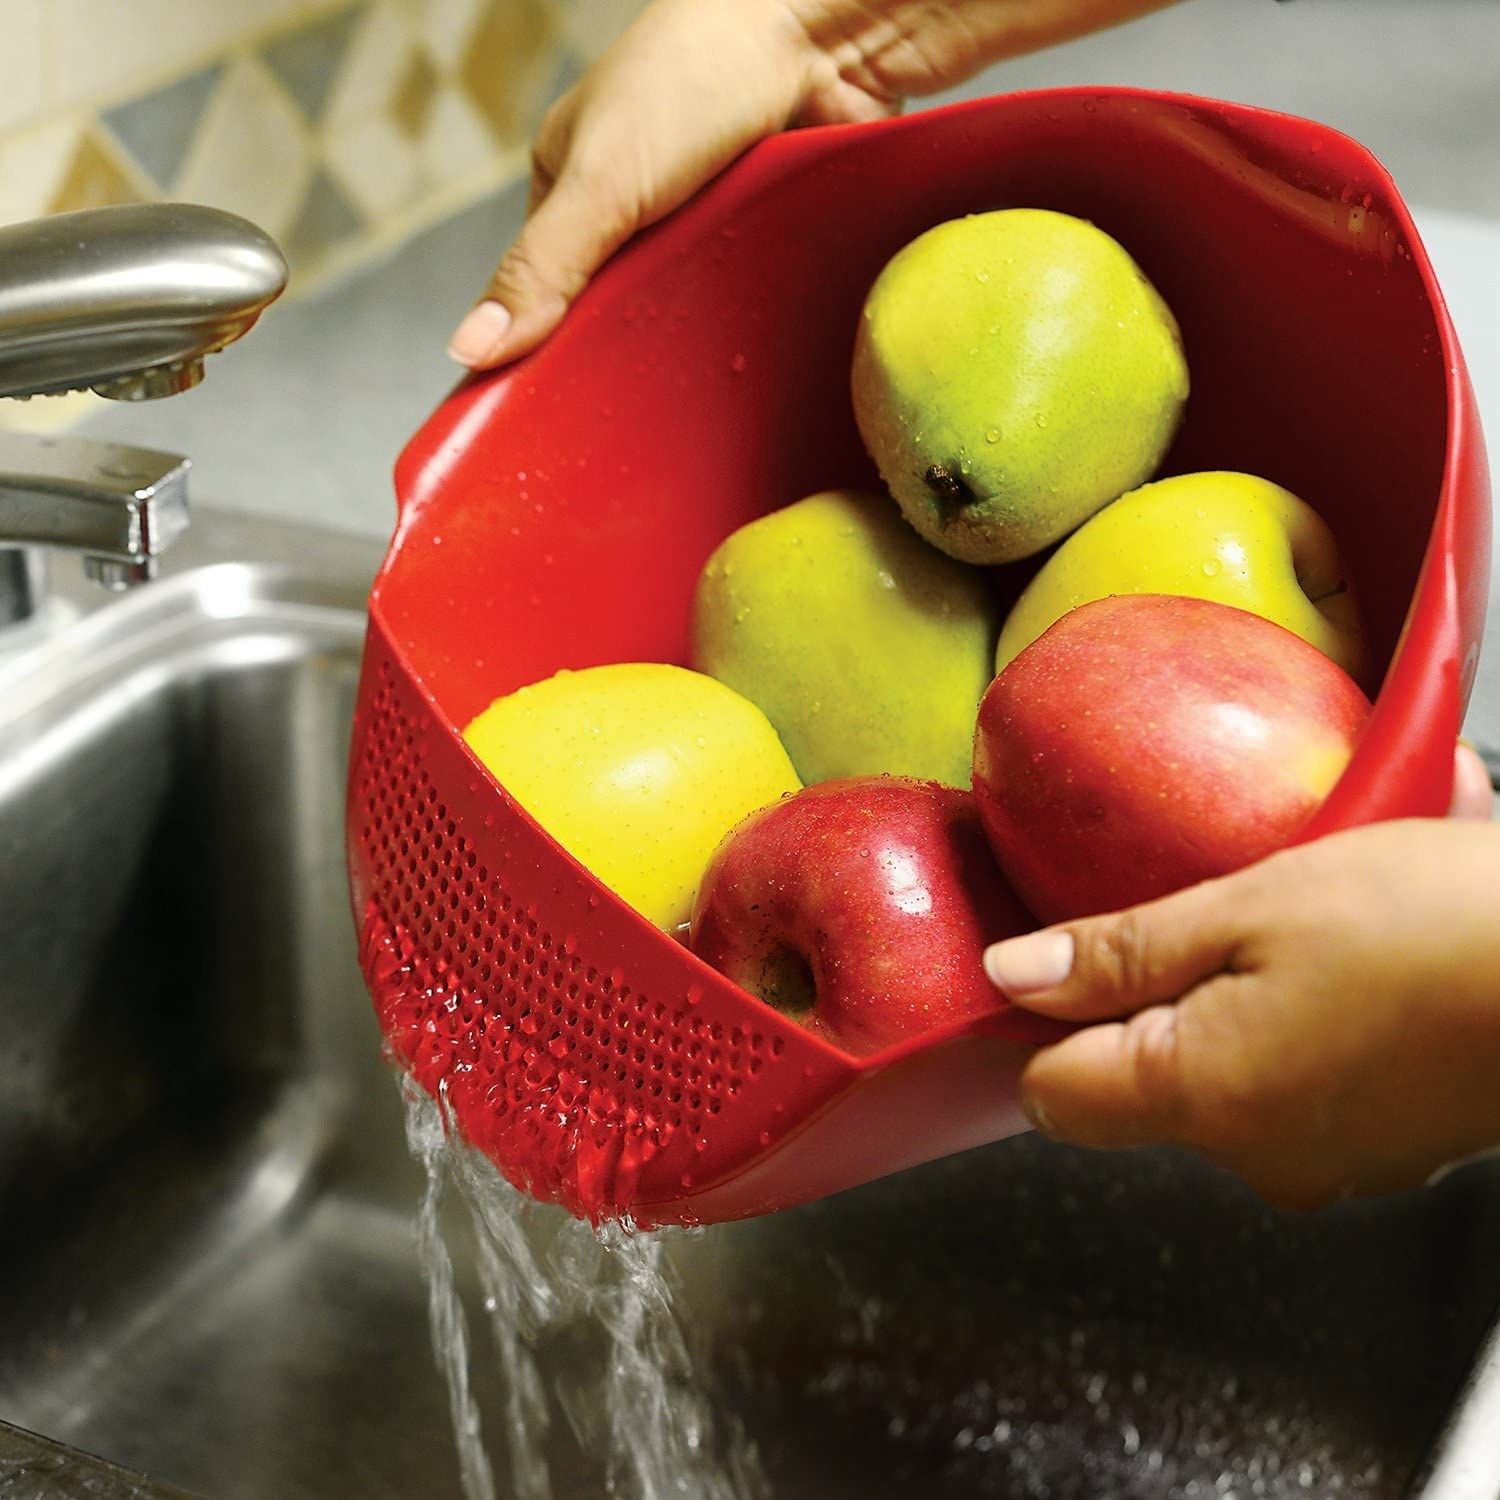 A person holding a large serving bowl with small attachment on top that has perforated holes for straining The bowl has apples inside and is draining water into the sink